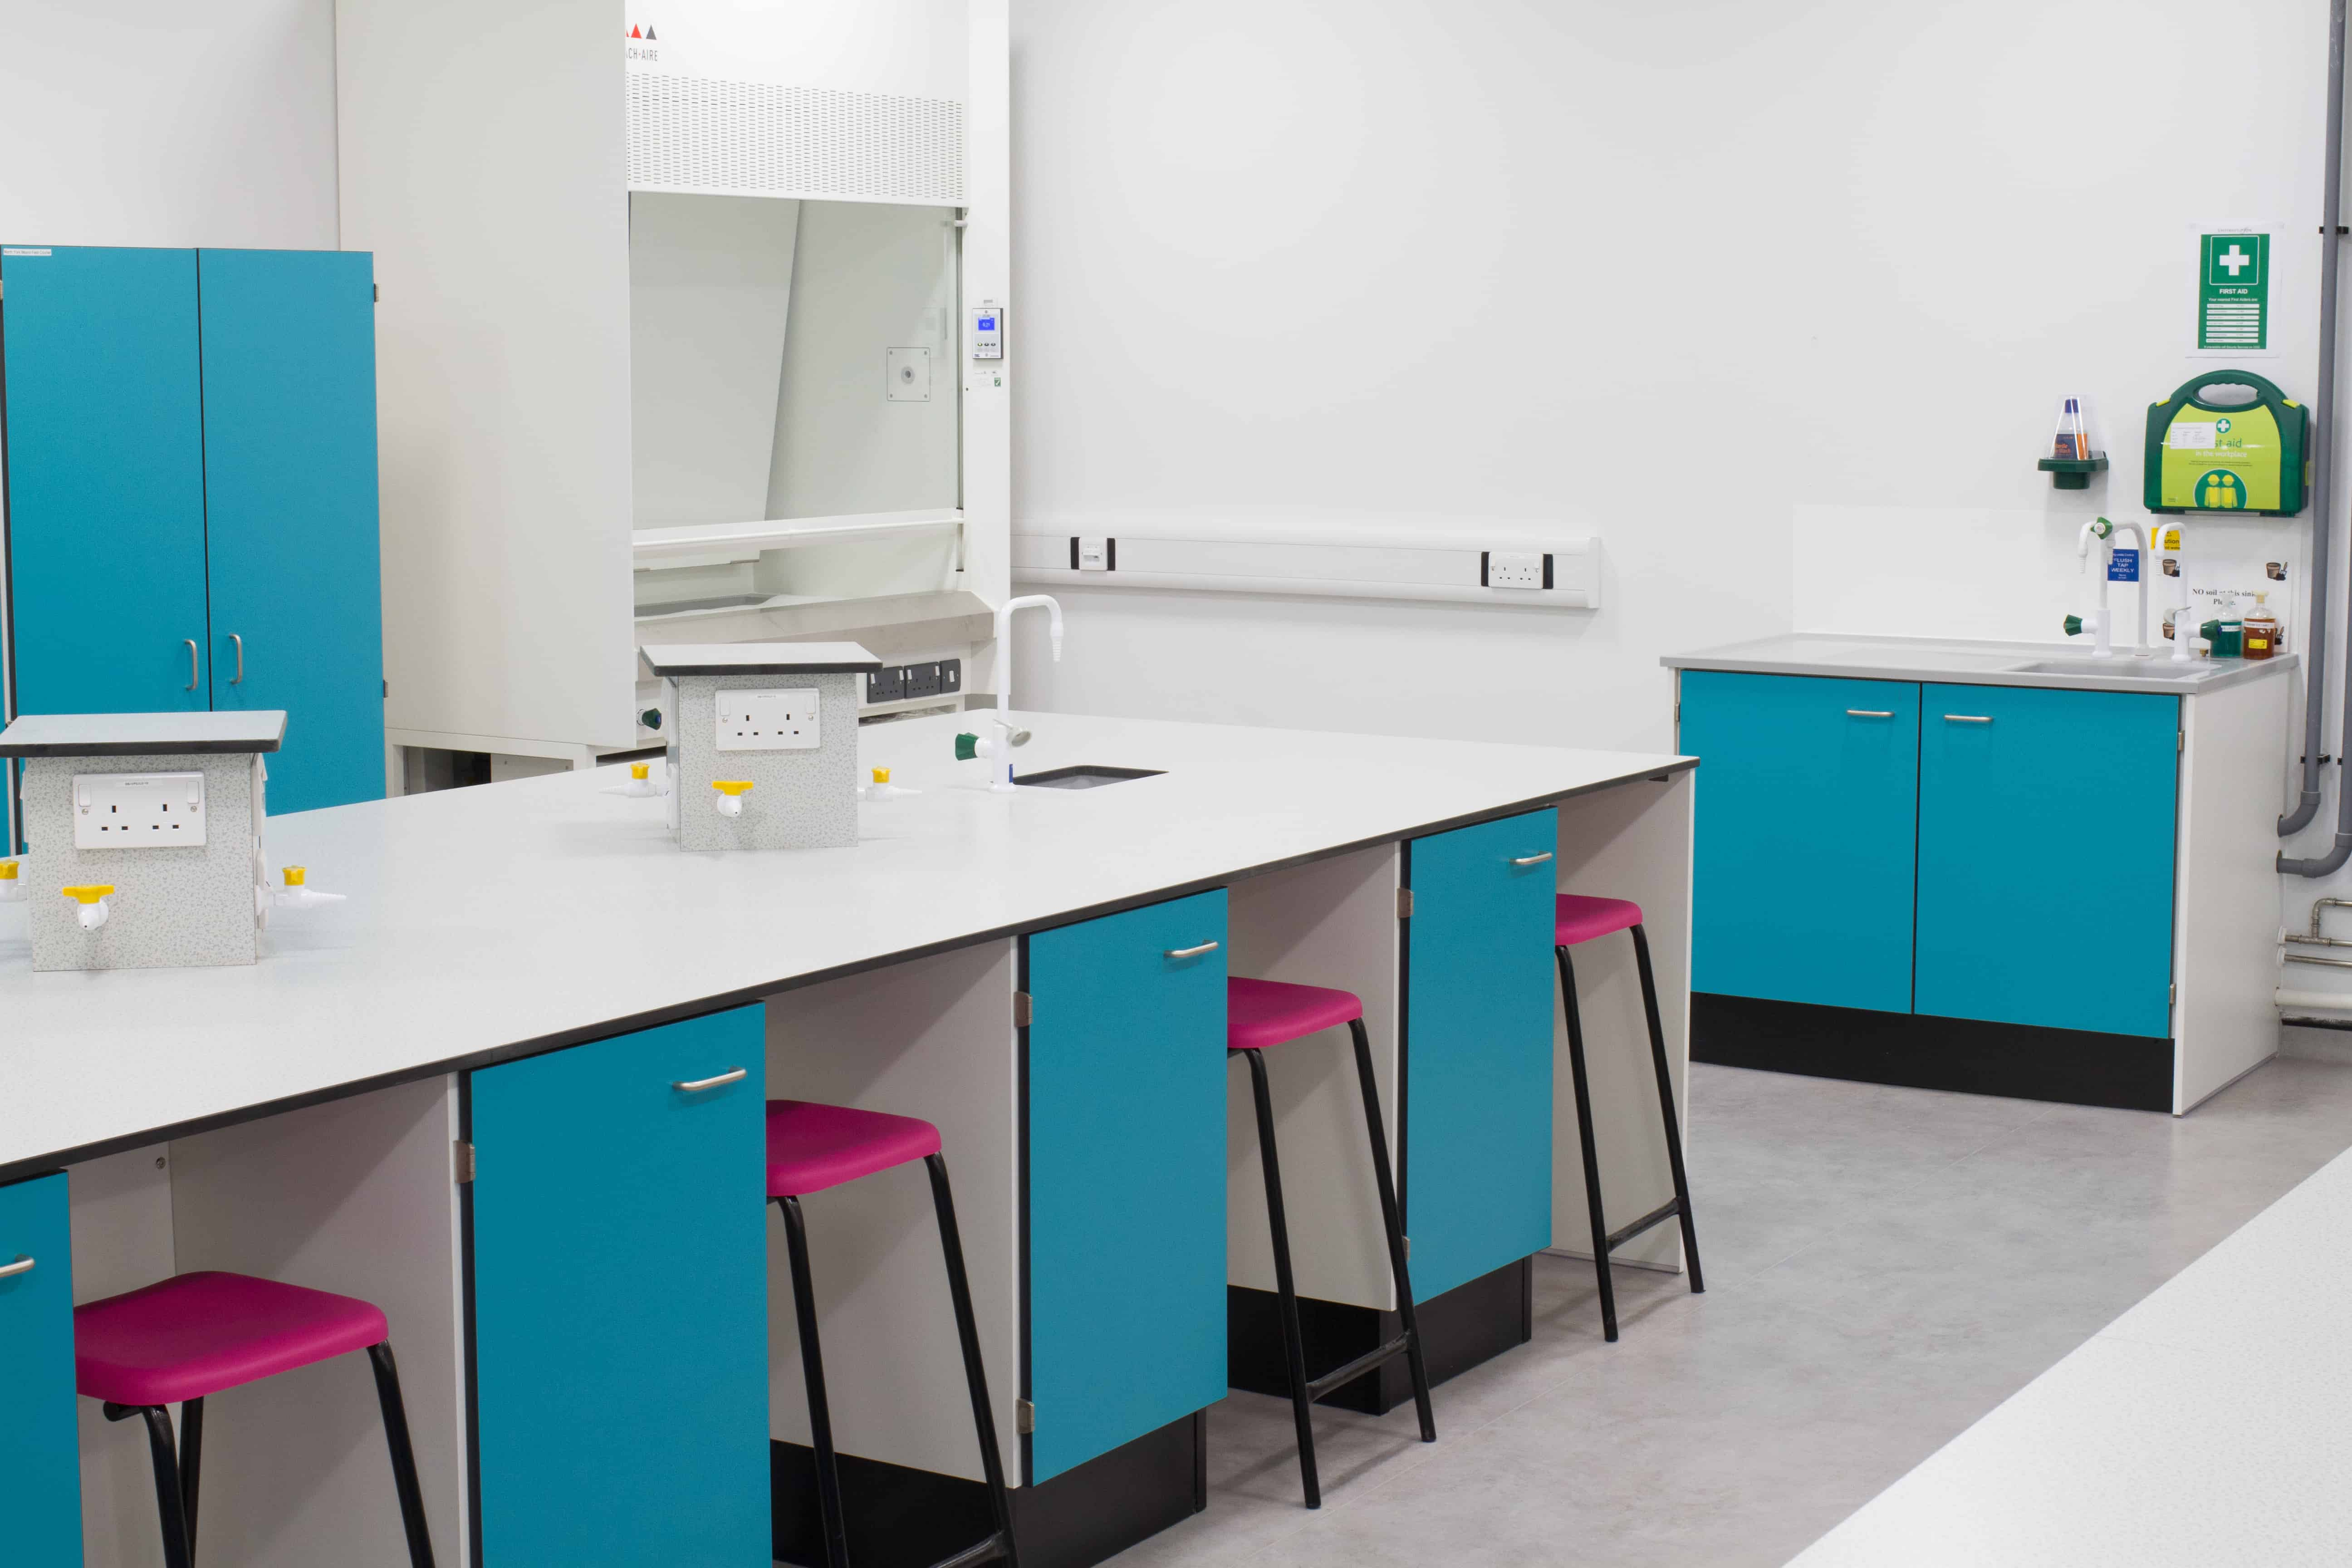 York university science laboratory Trespa worktops.